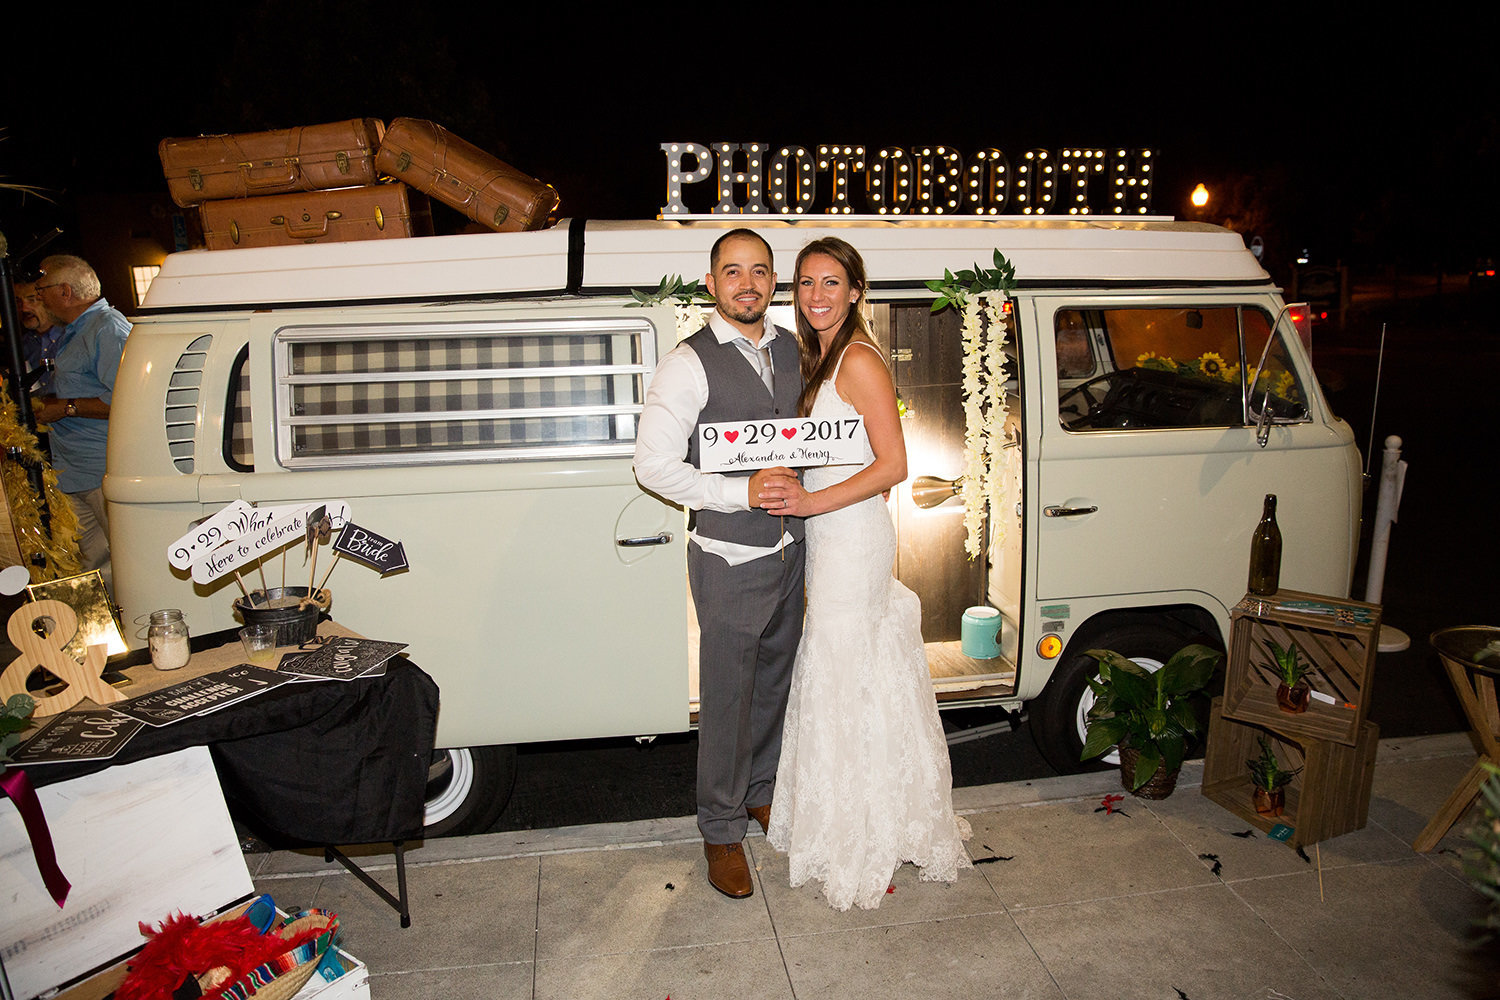 stunning night image with bride and groom at brick with vintage vw van